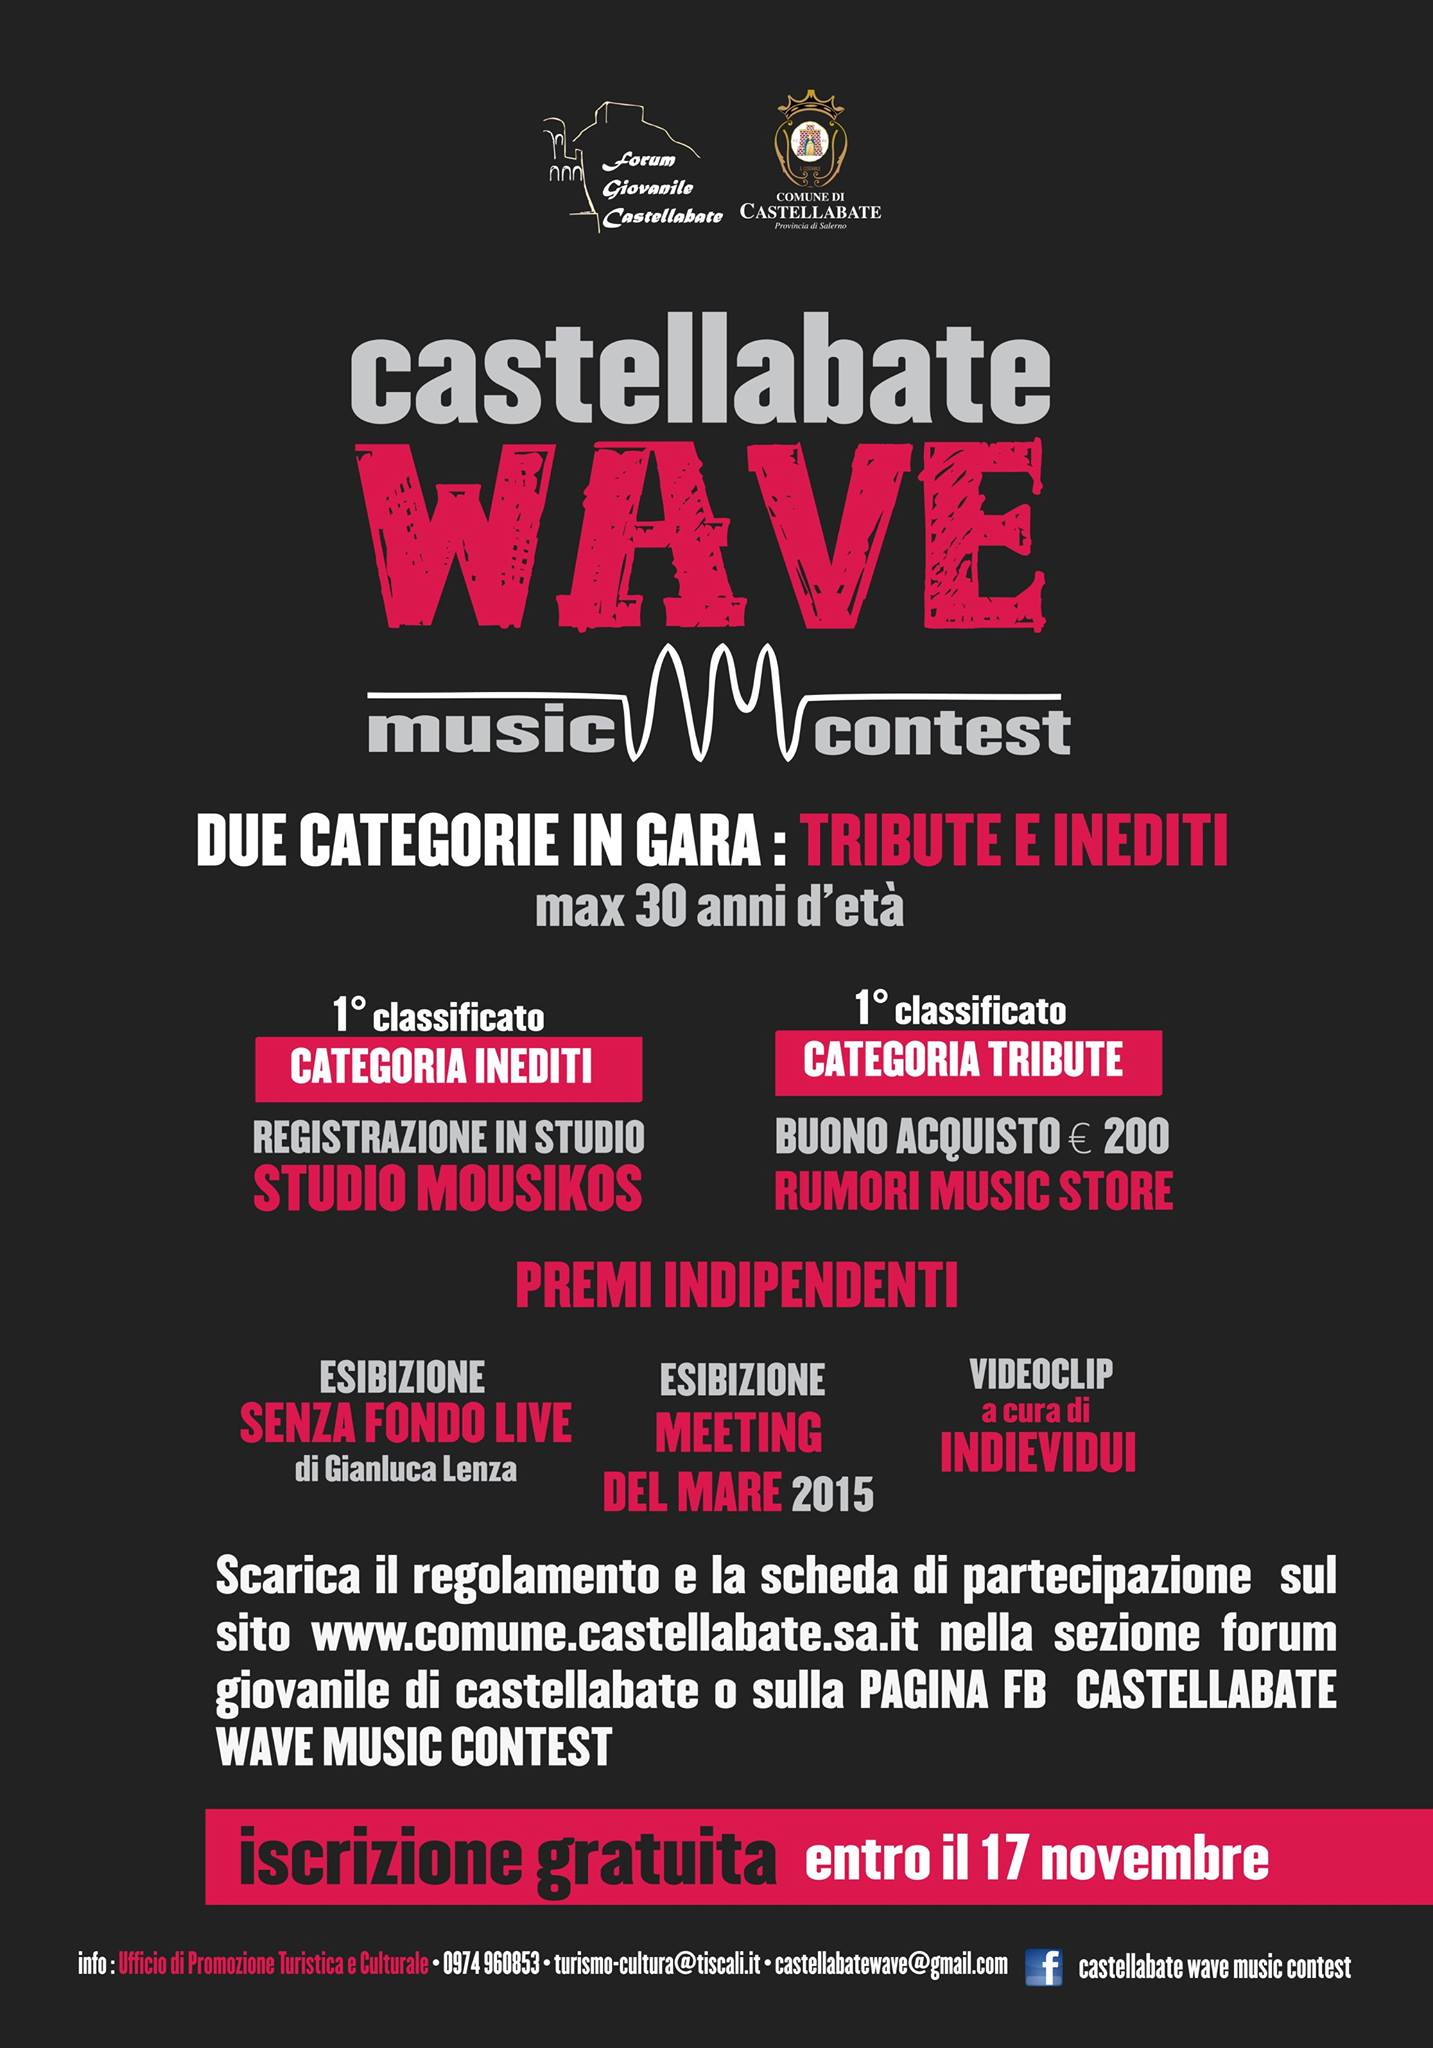 Castellabate Wave music contest